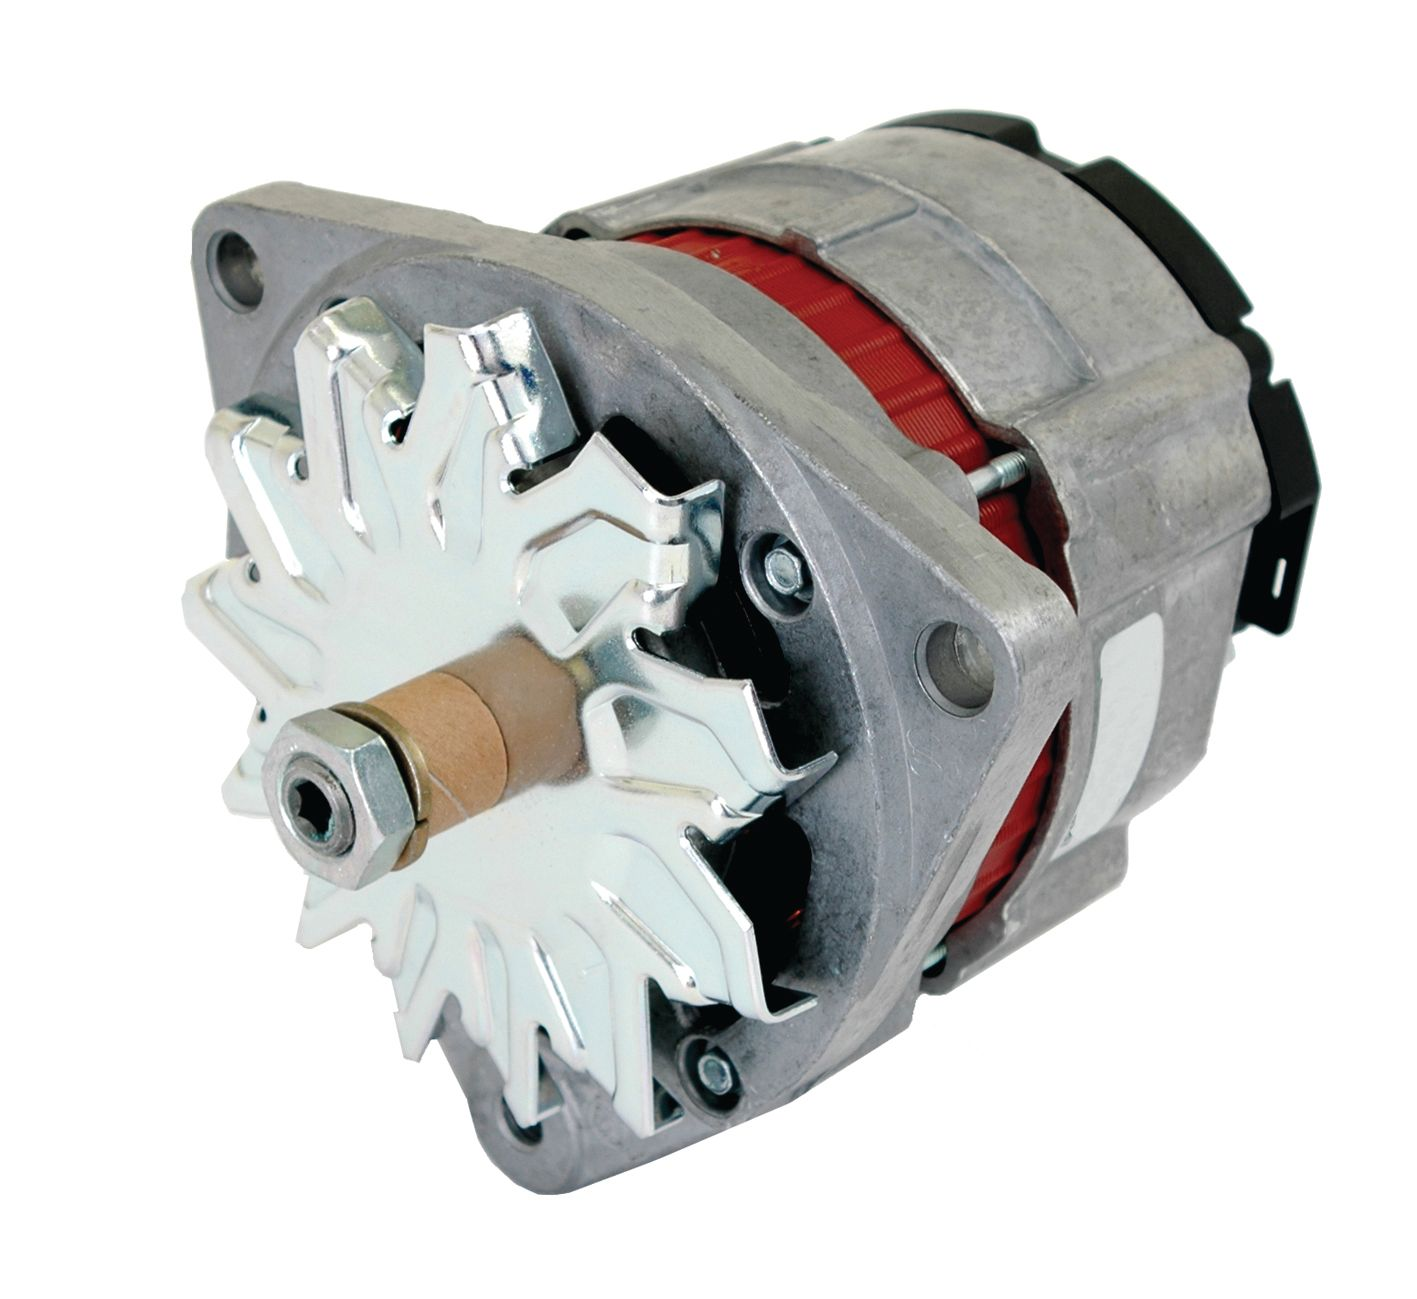 MERCEDES BENZ ALTERNATOR 35944